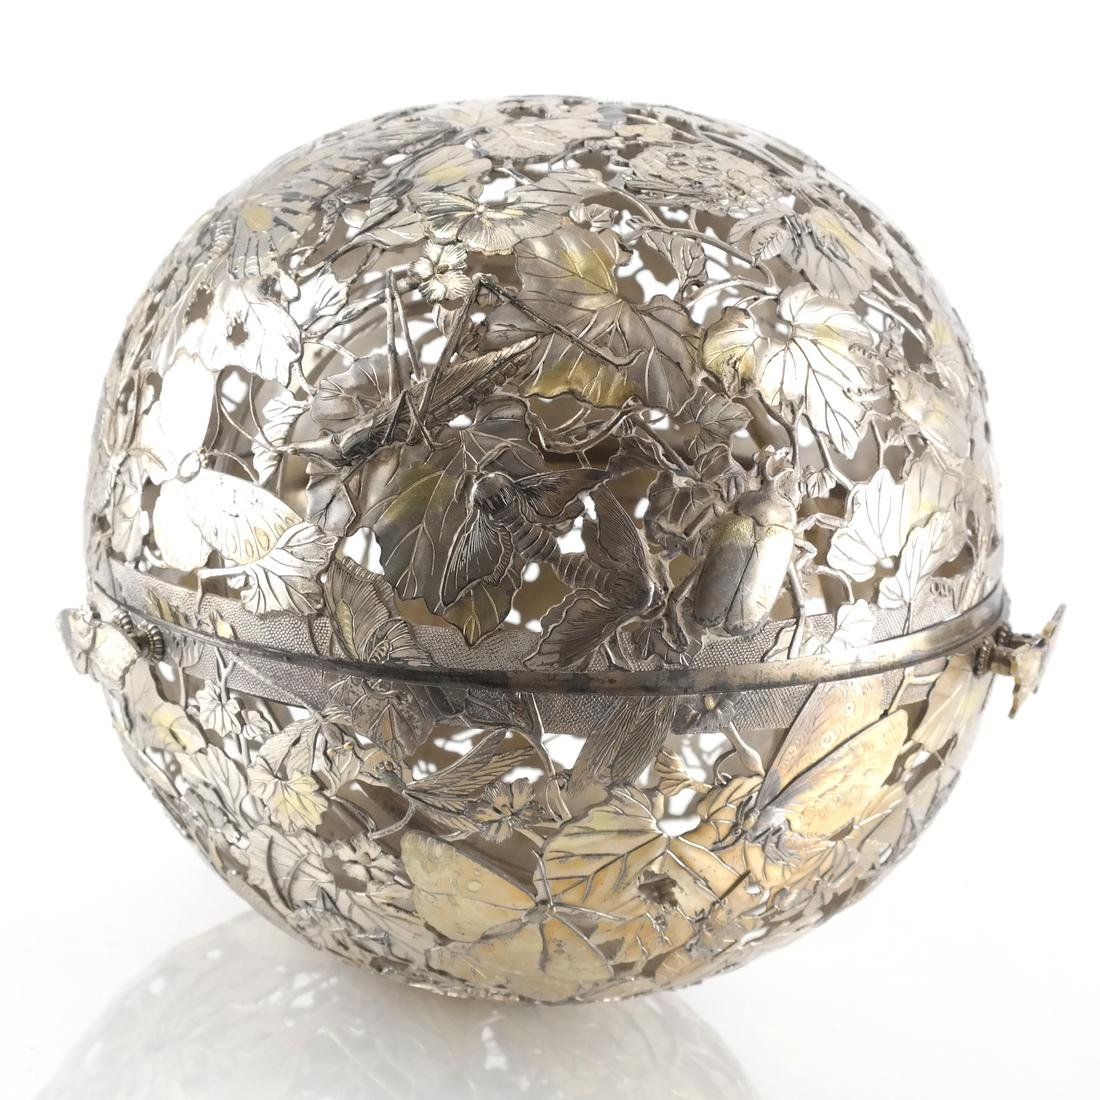 Afghan /Central Asian Vermeil & Silver Orb